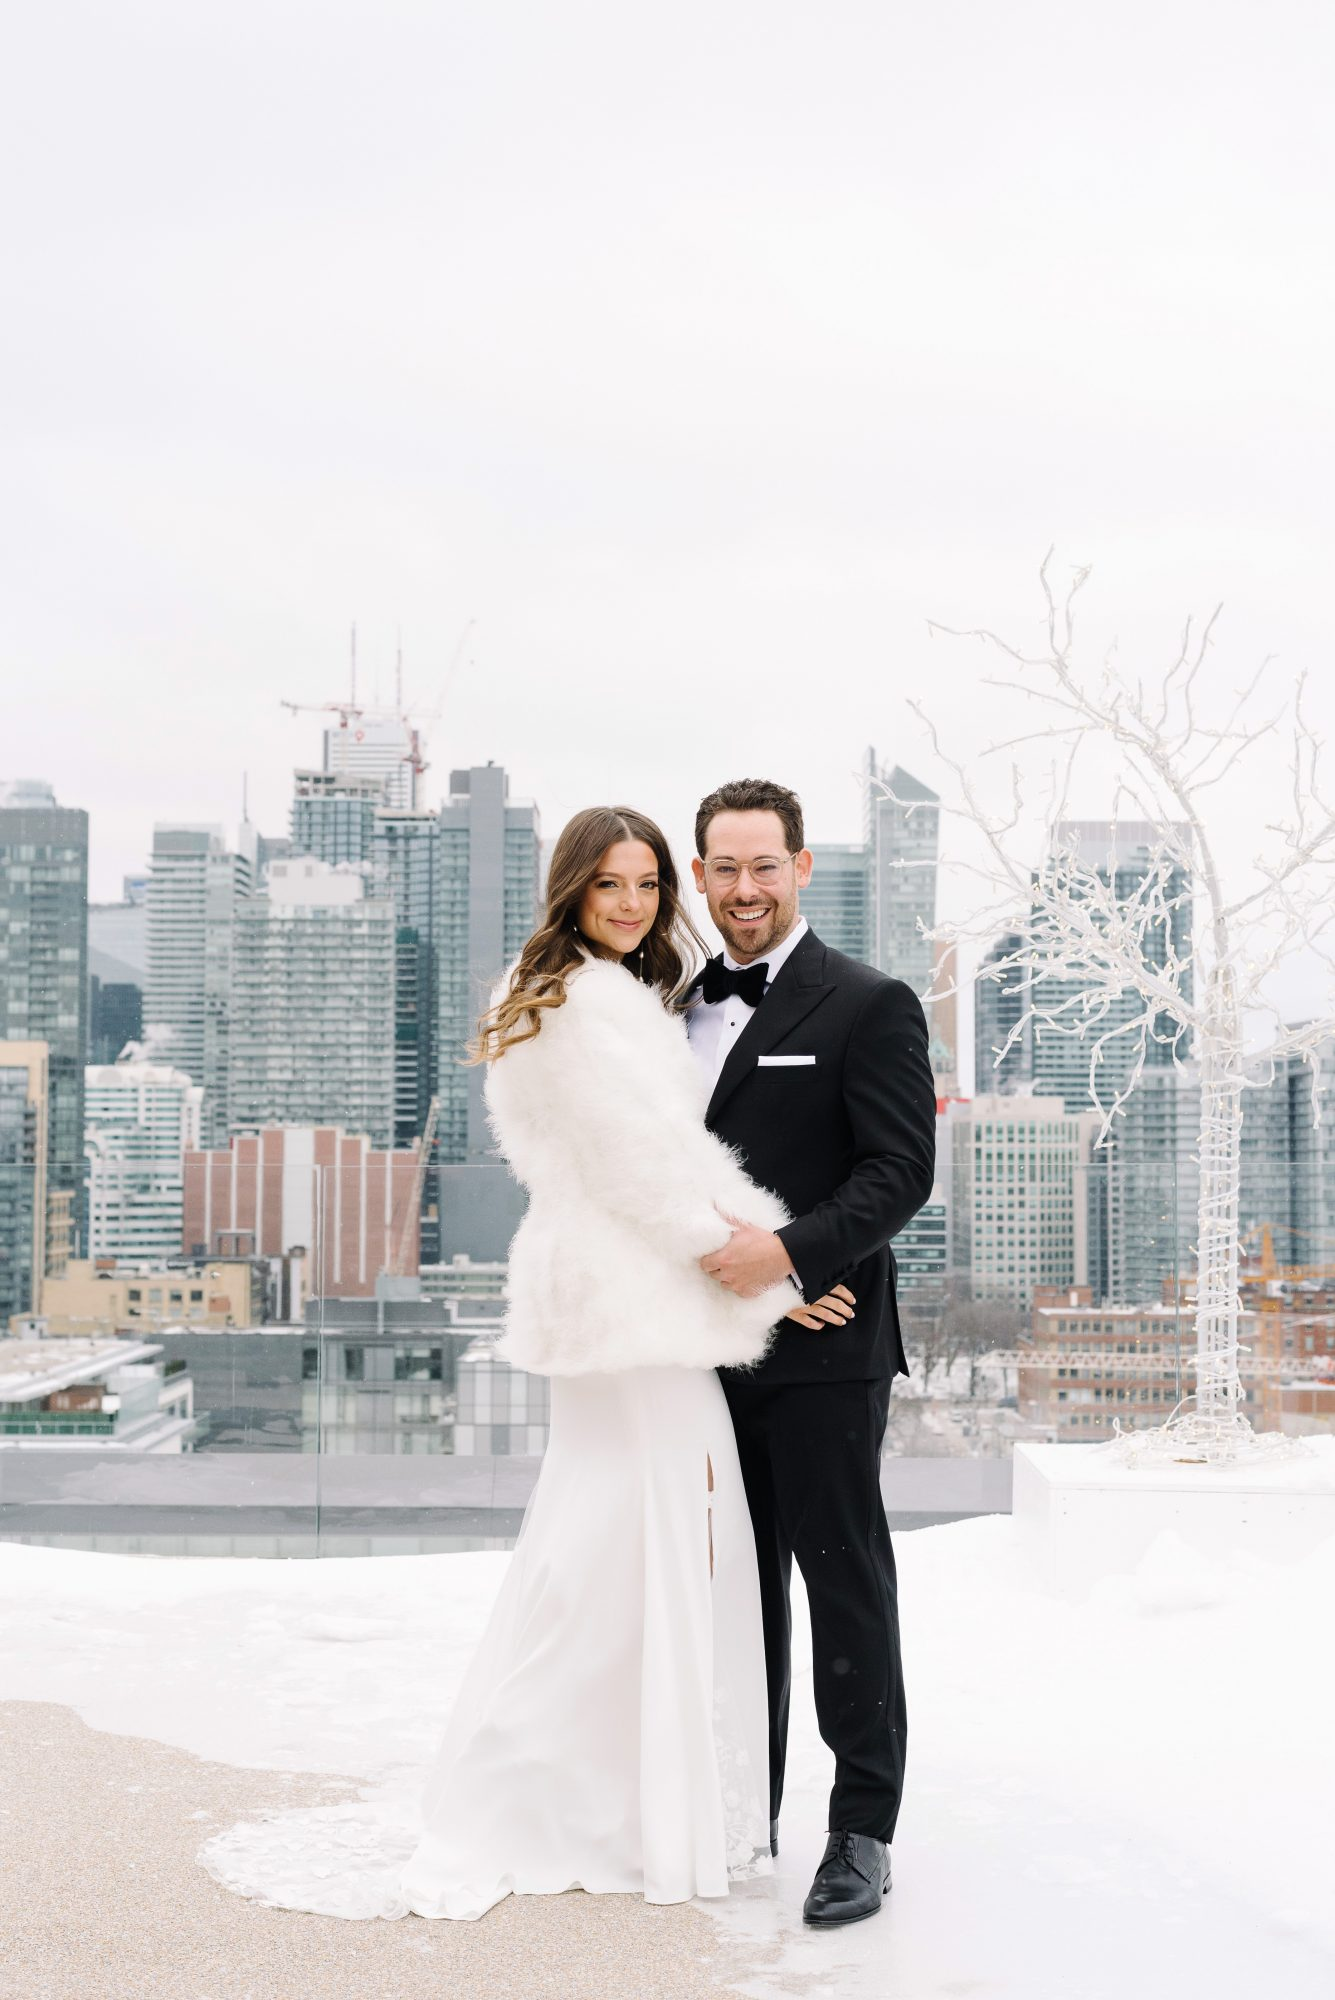 krista will wedding couple outside fur coat cityscape